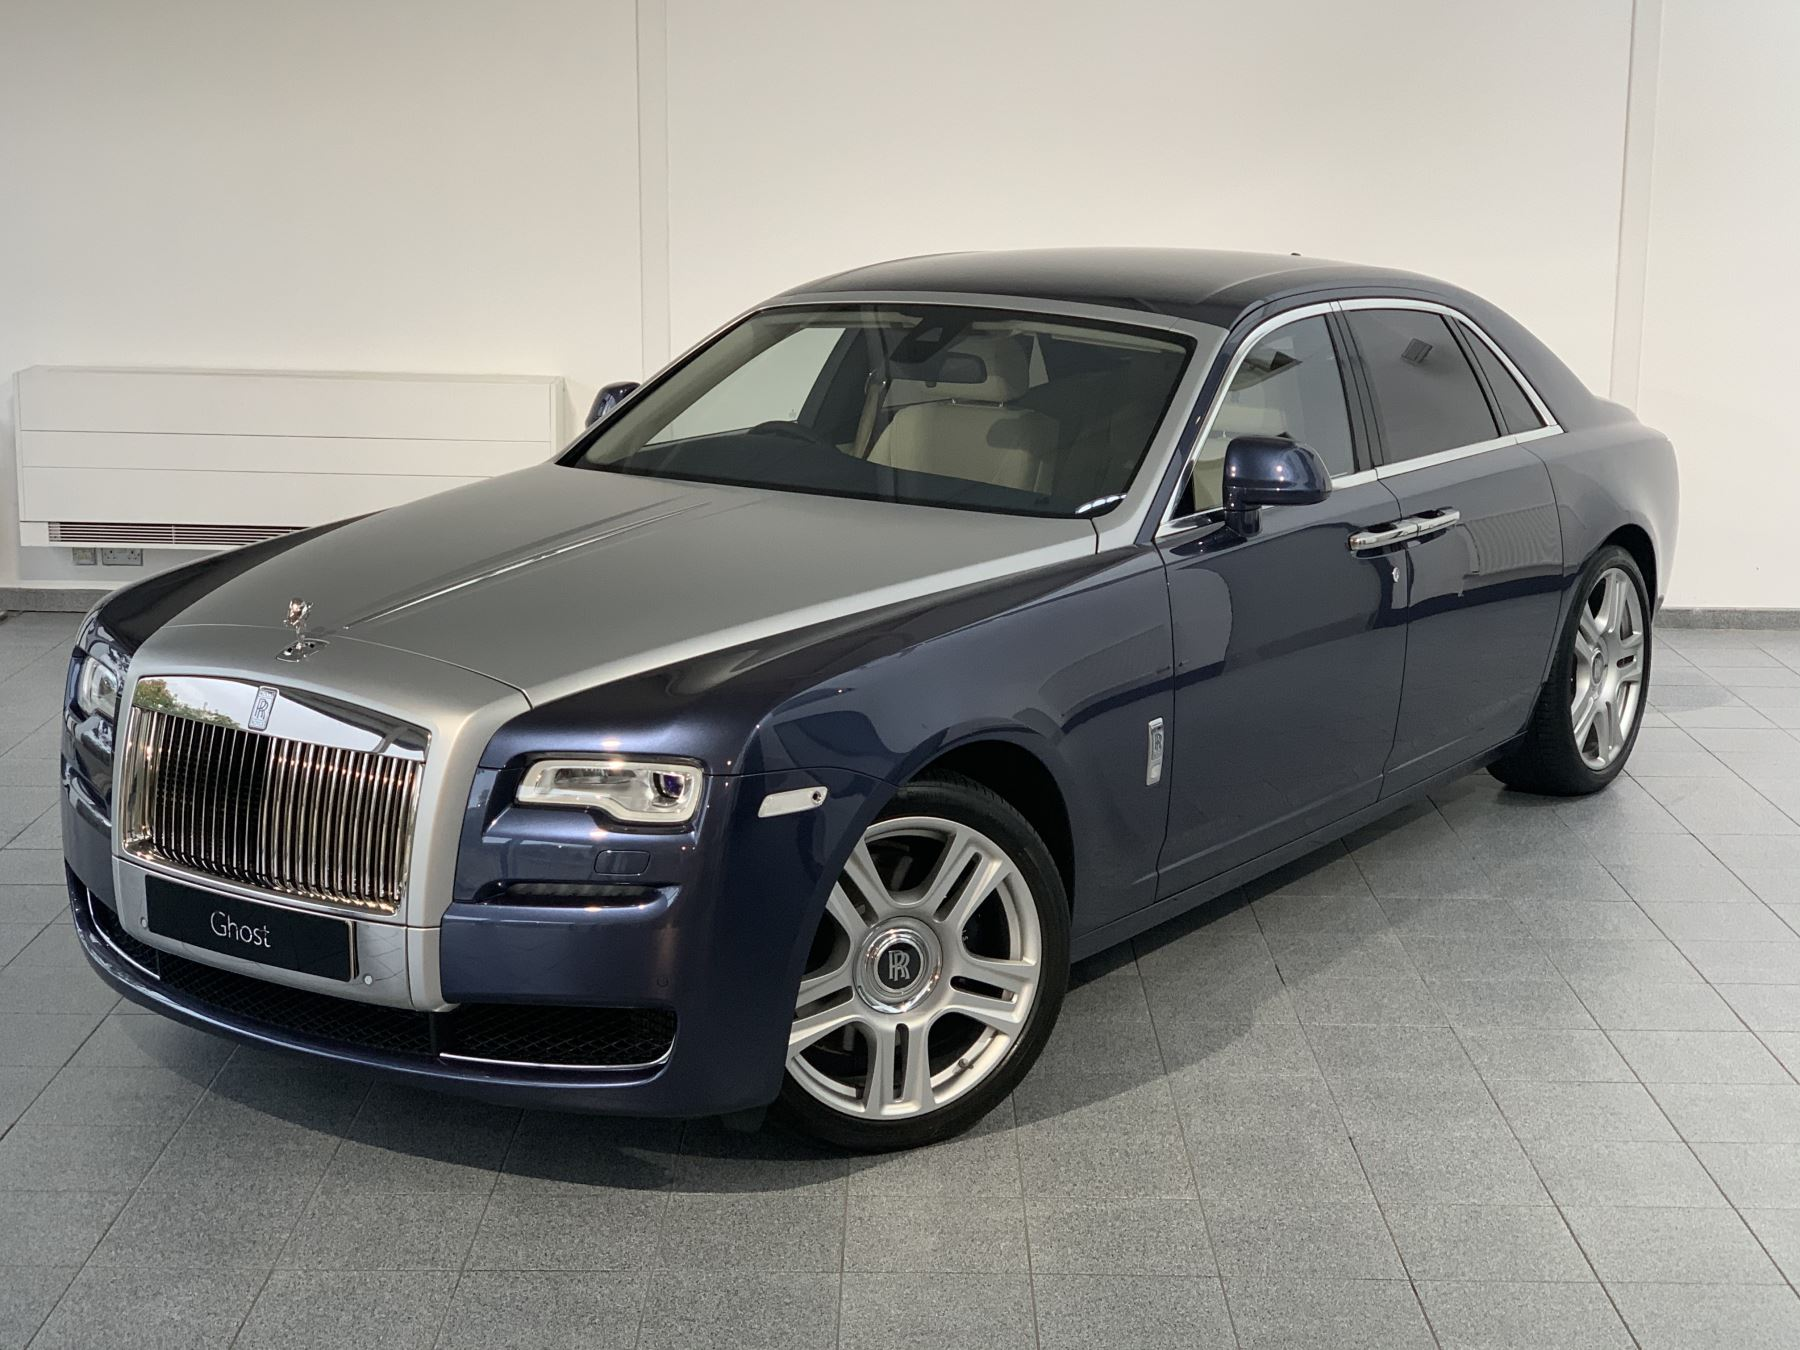 Rolls-Royce Ghost V12 AUTO 6.6 Automatic 4 door Saloon (2017) image